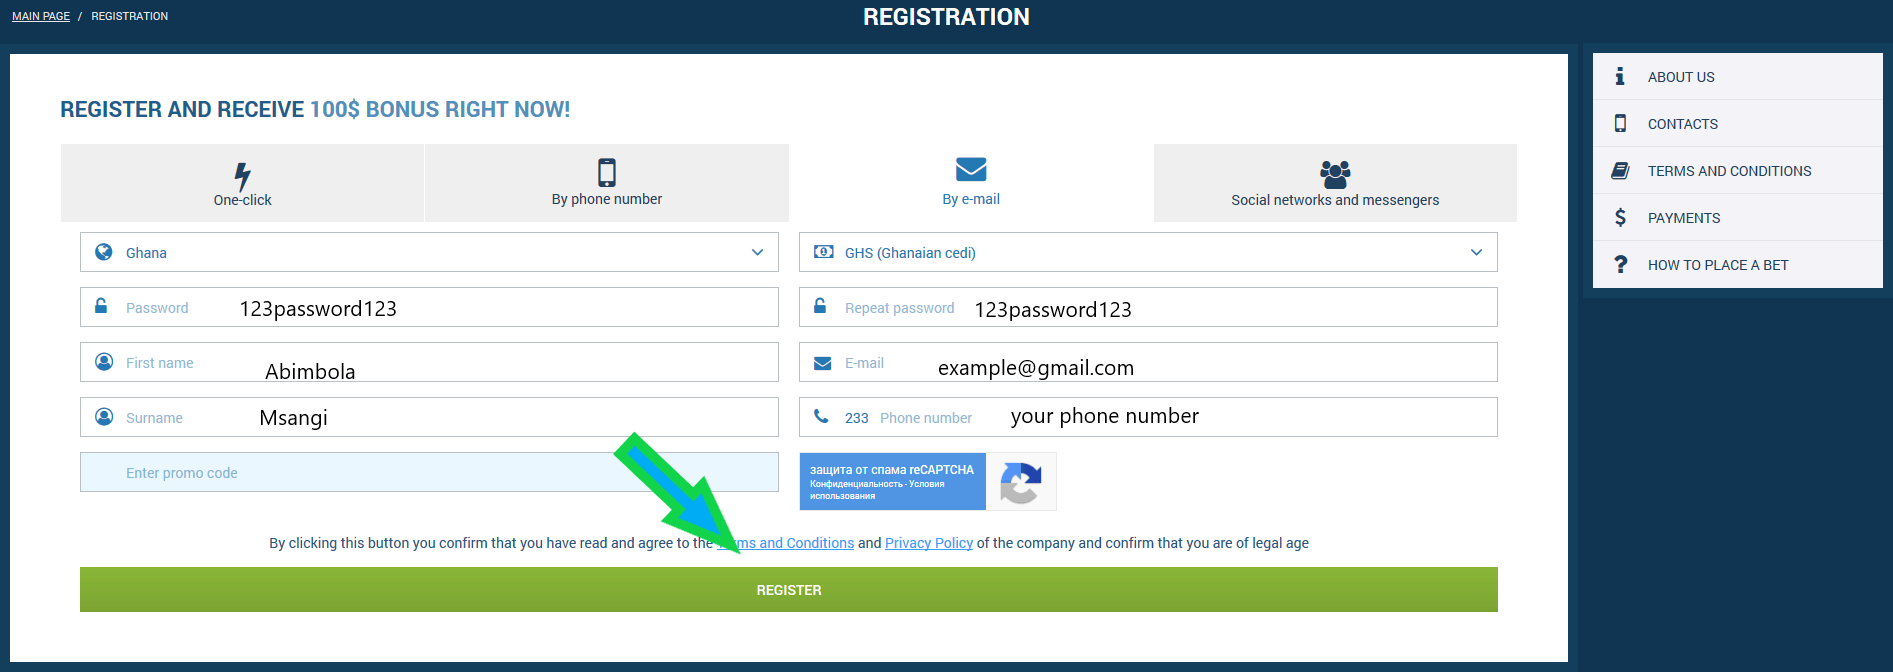 registration phone